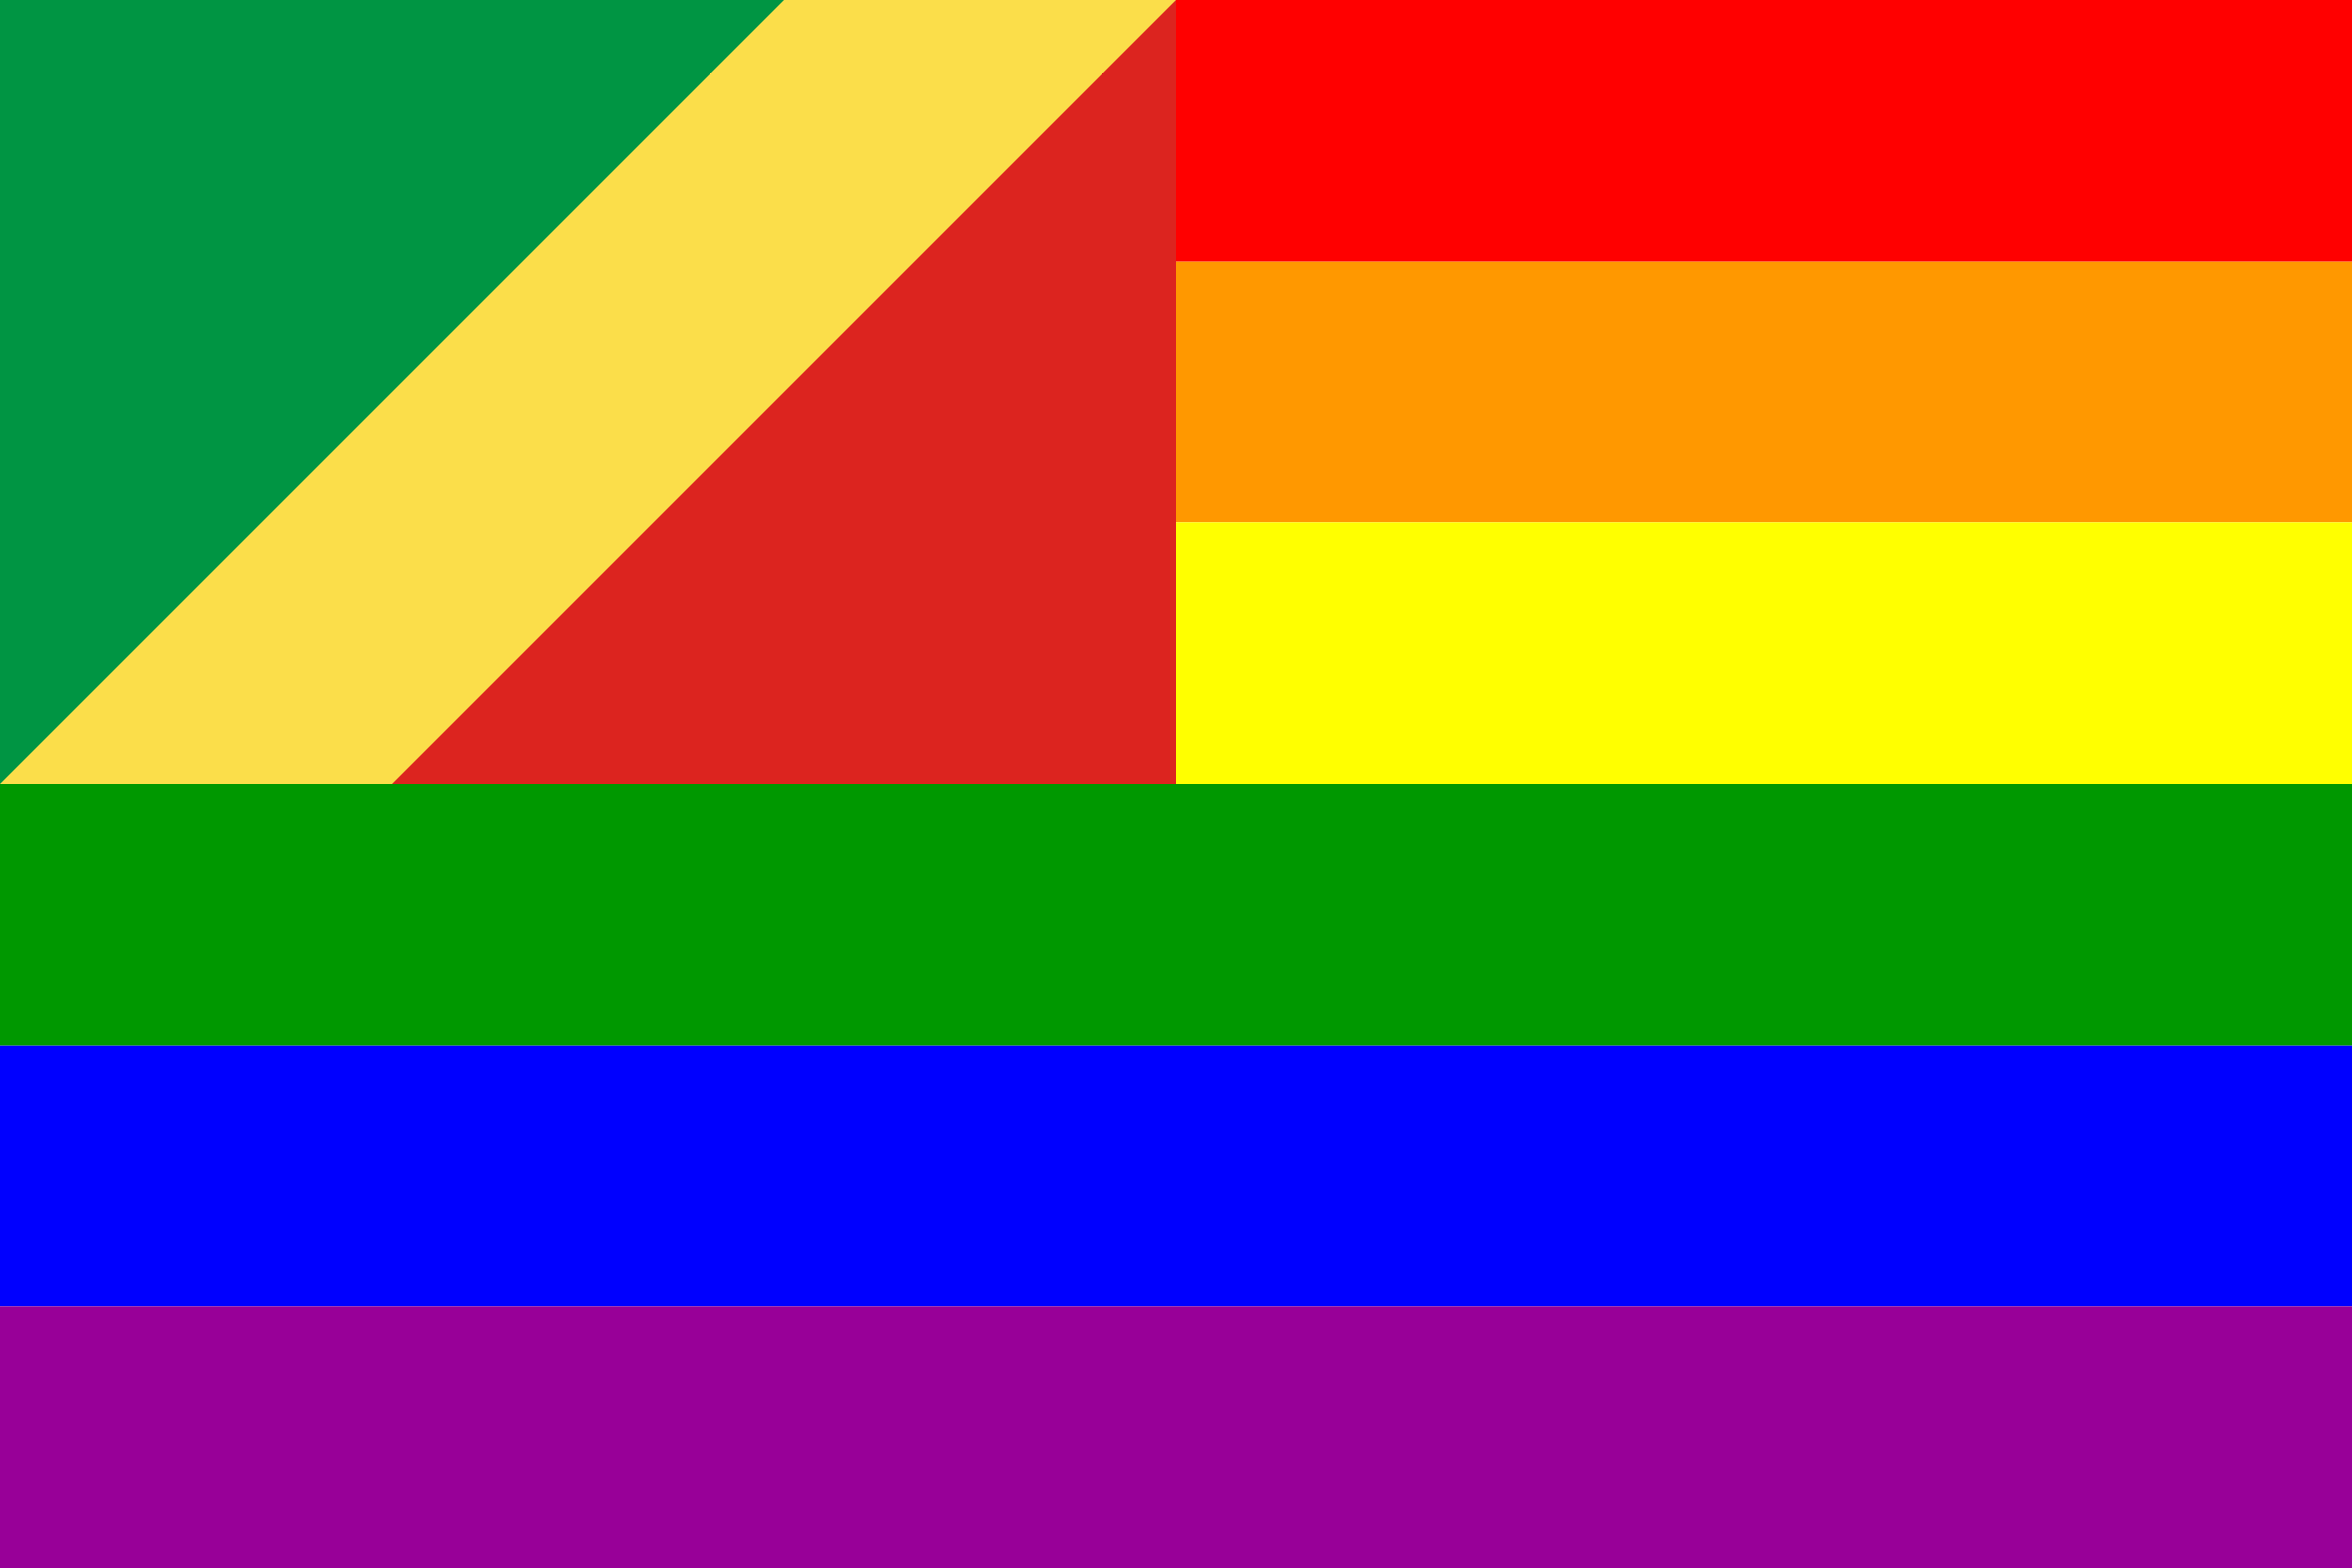 The Congo Rainbow Flag by AdamStanislav